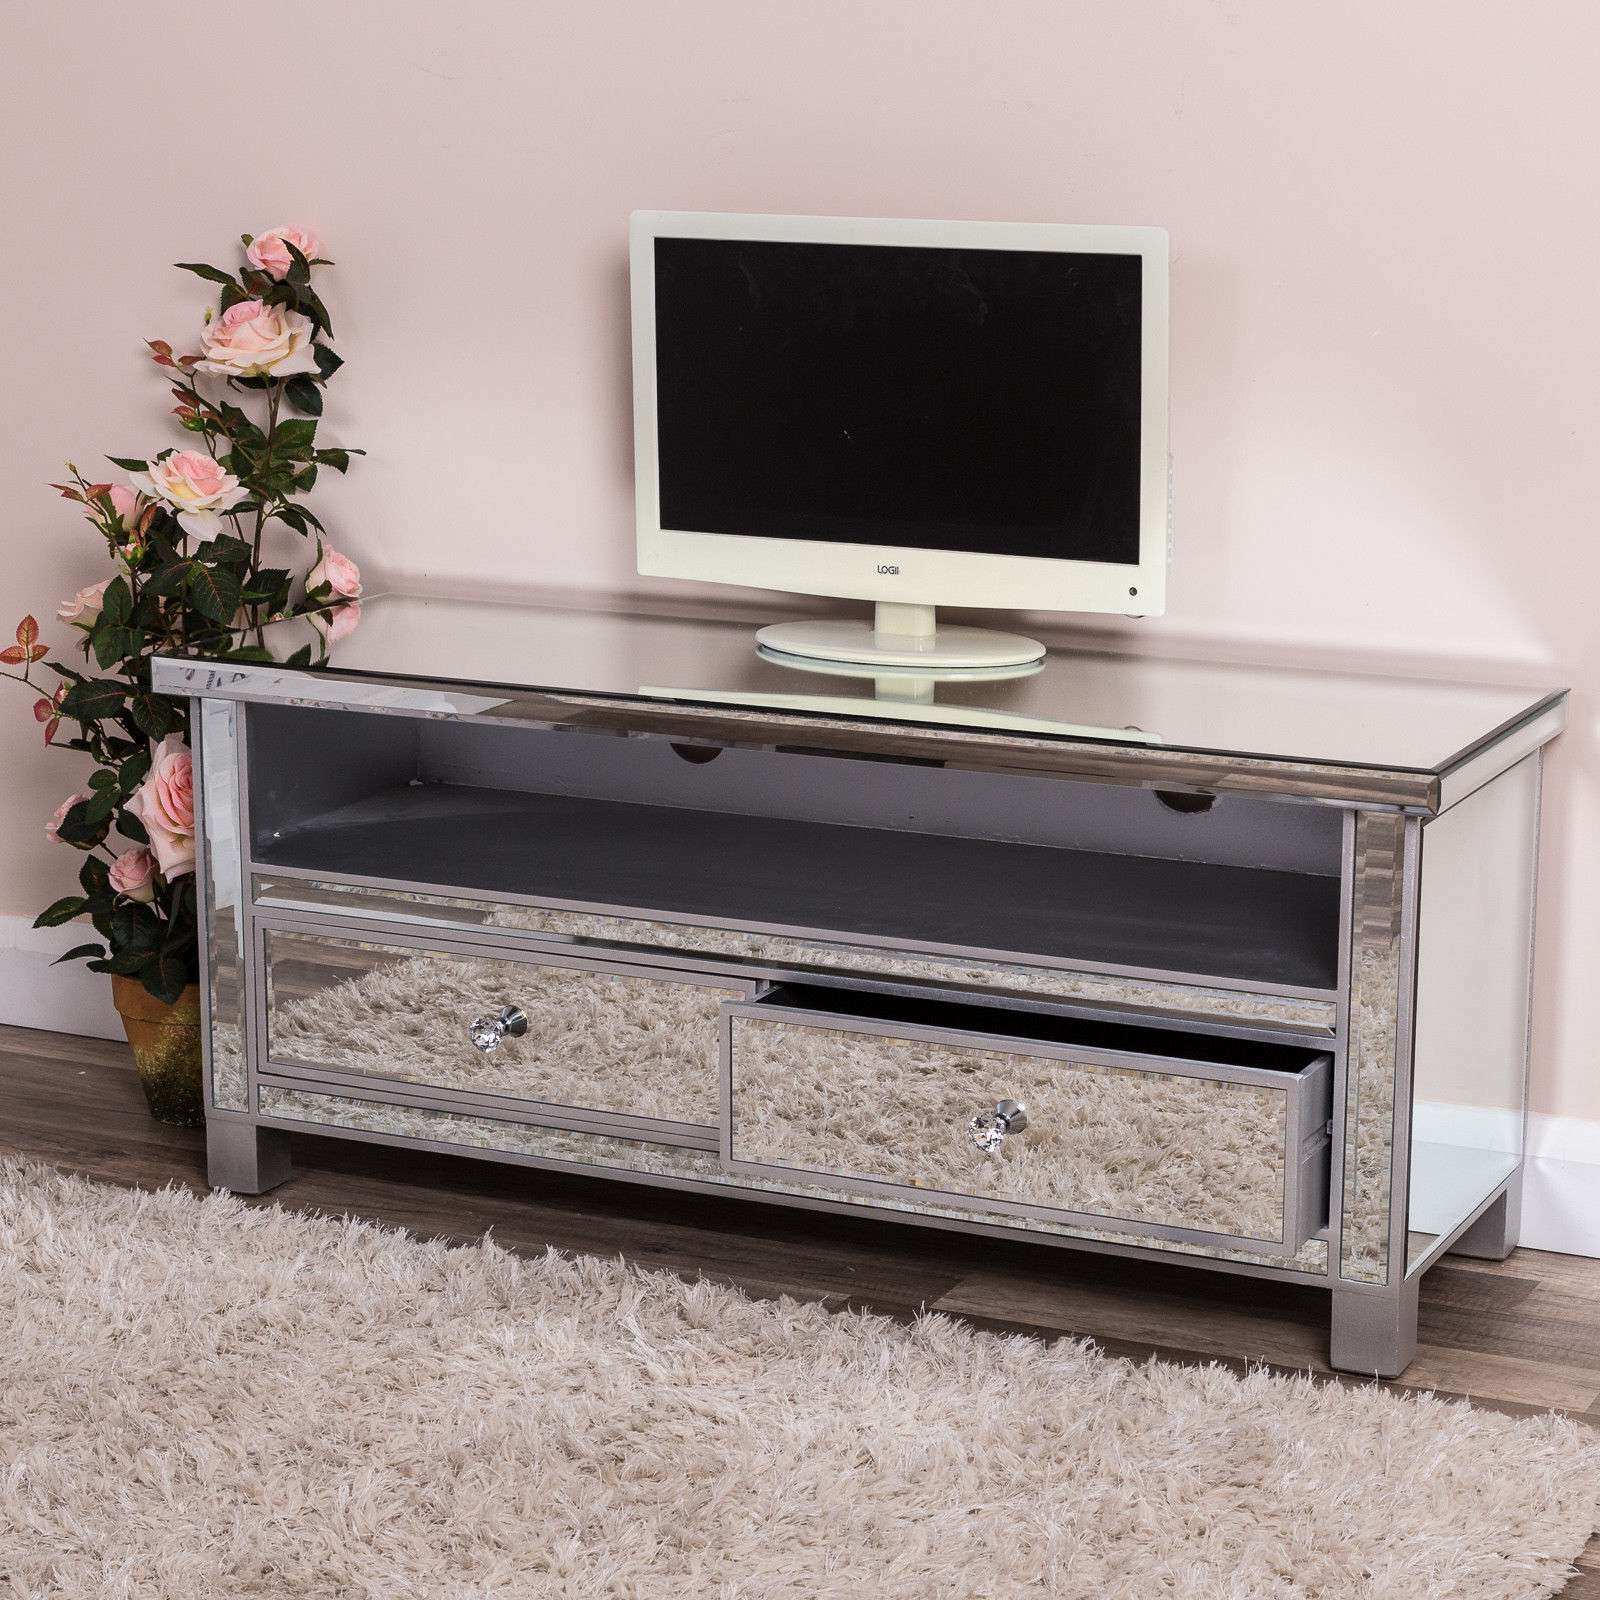 Silver Tv Stands With Widely Used Silver Tv Stands Stand Home Design Ideas – Carolinacarconnections (Gallery 8 of 20)